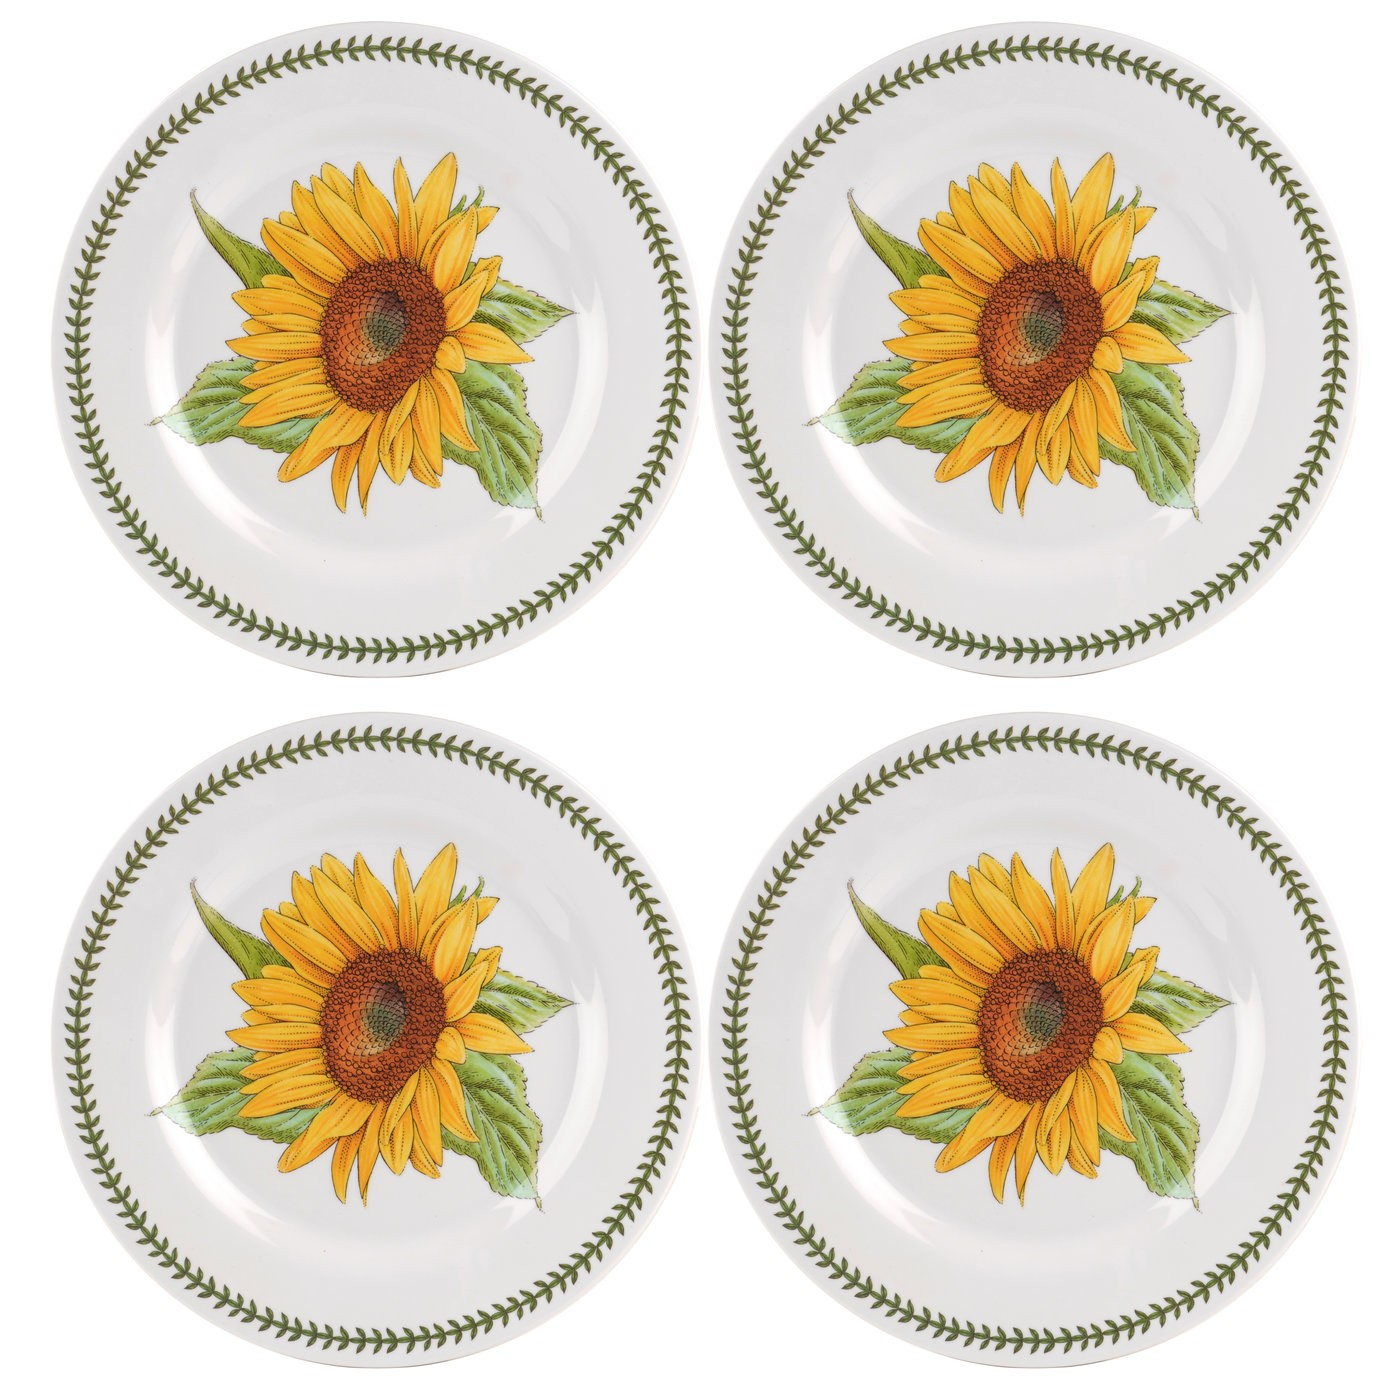 Portmeirion Botanic Garden Melamine Dinner Plates Set of 4 ...